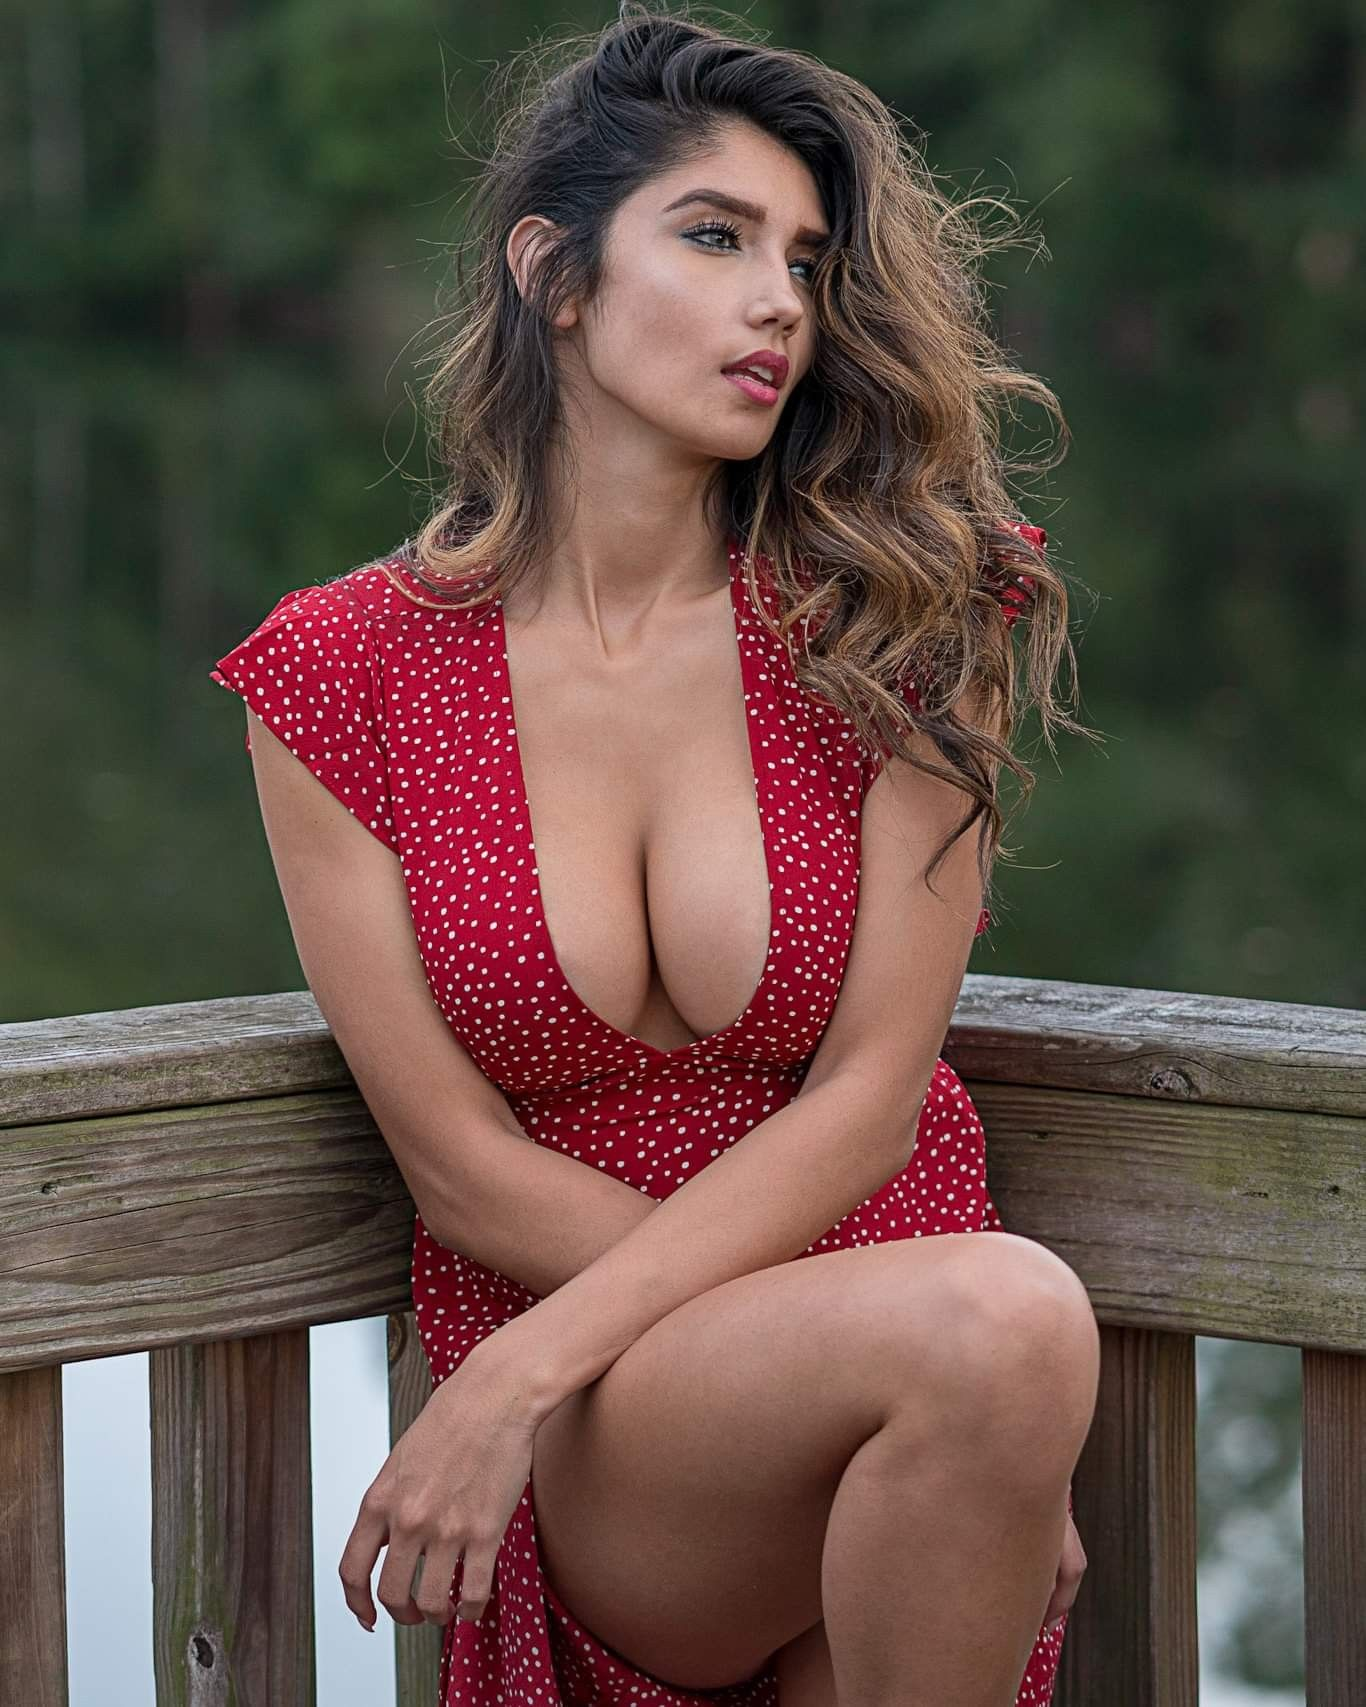 Cleavage Diana Newton nudes (99 photo), Sexy, Fappening, Instagram, underwear 2019